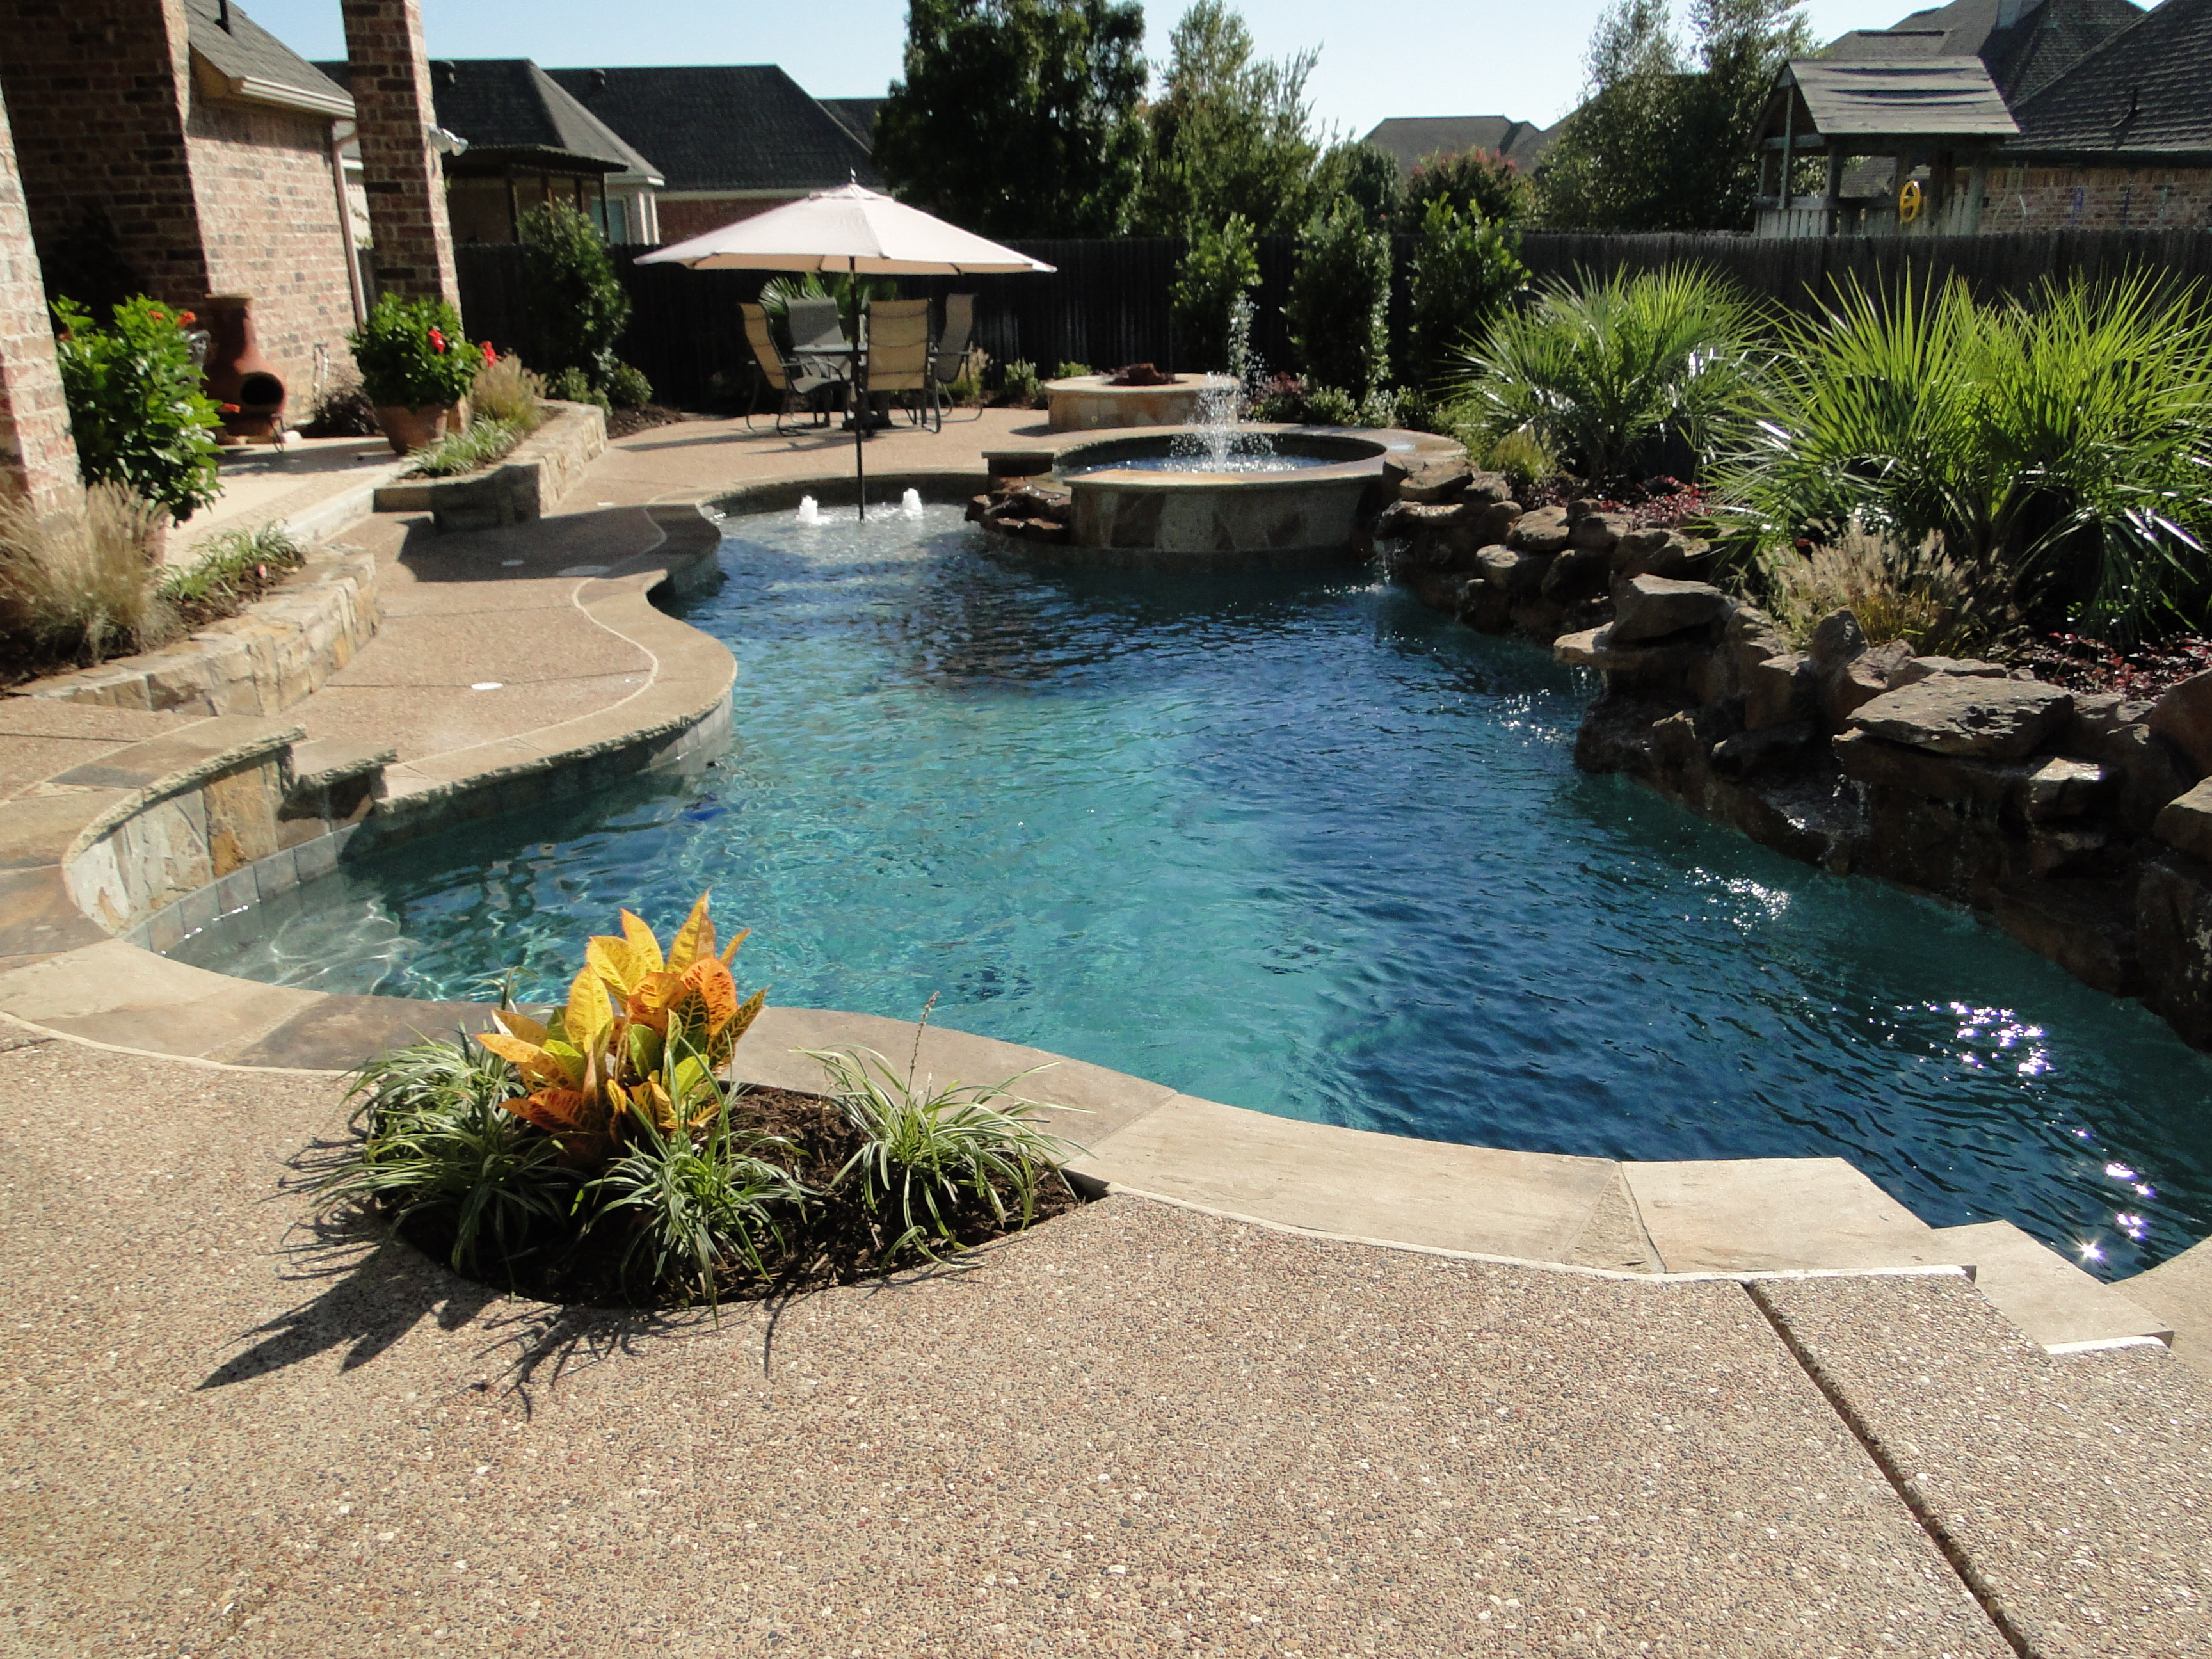 Backyard Landscaping Ideas-Swimming Pool Design ... on Backyard Pool Landscape Designs id=62692